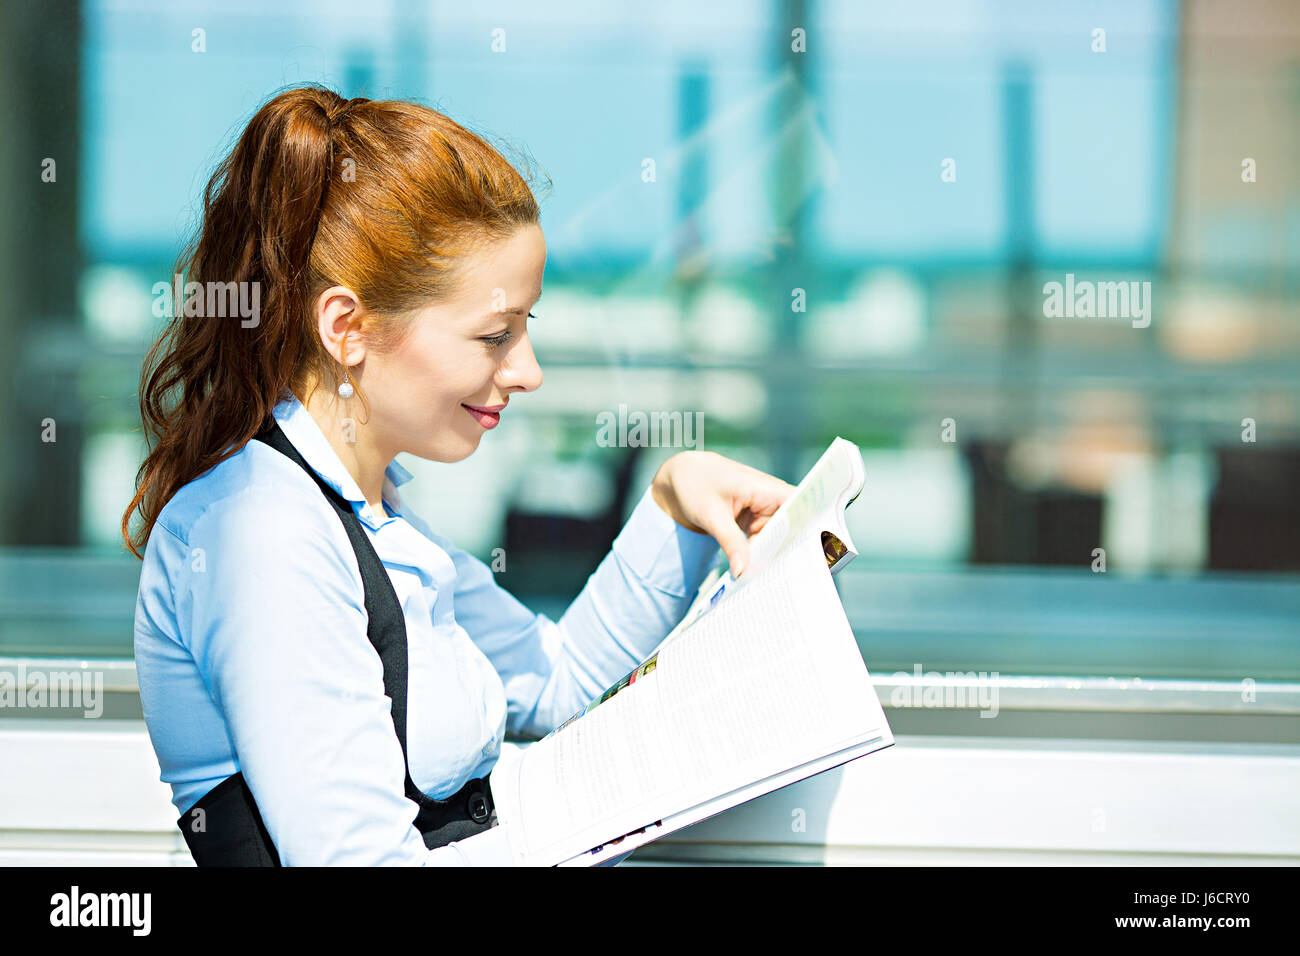 Closeup side view portrait business woman reading latest news in magazine, smiling happy, great stock market news - Stock Image